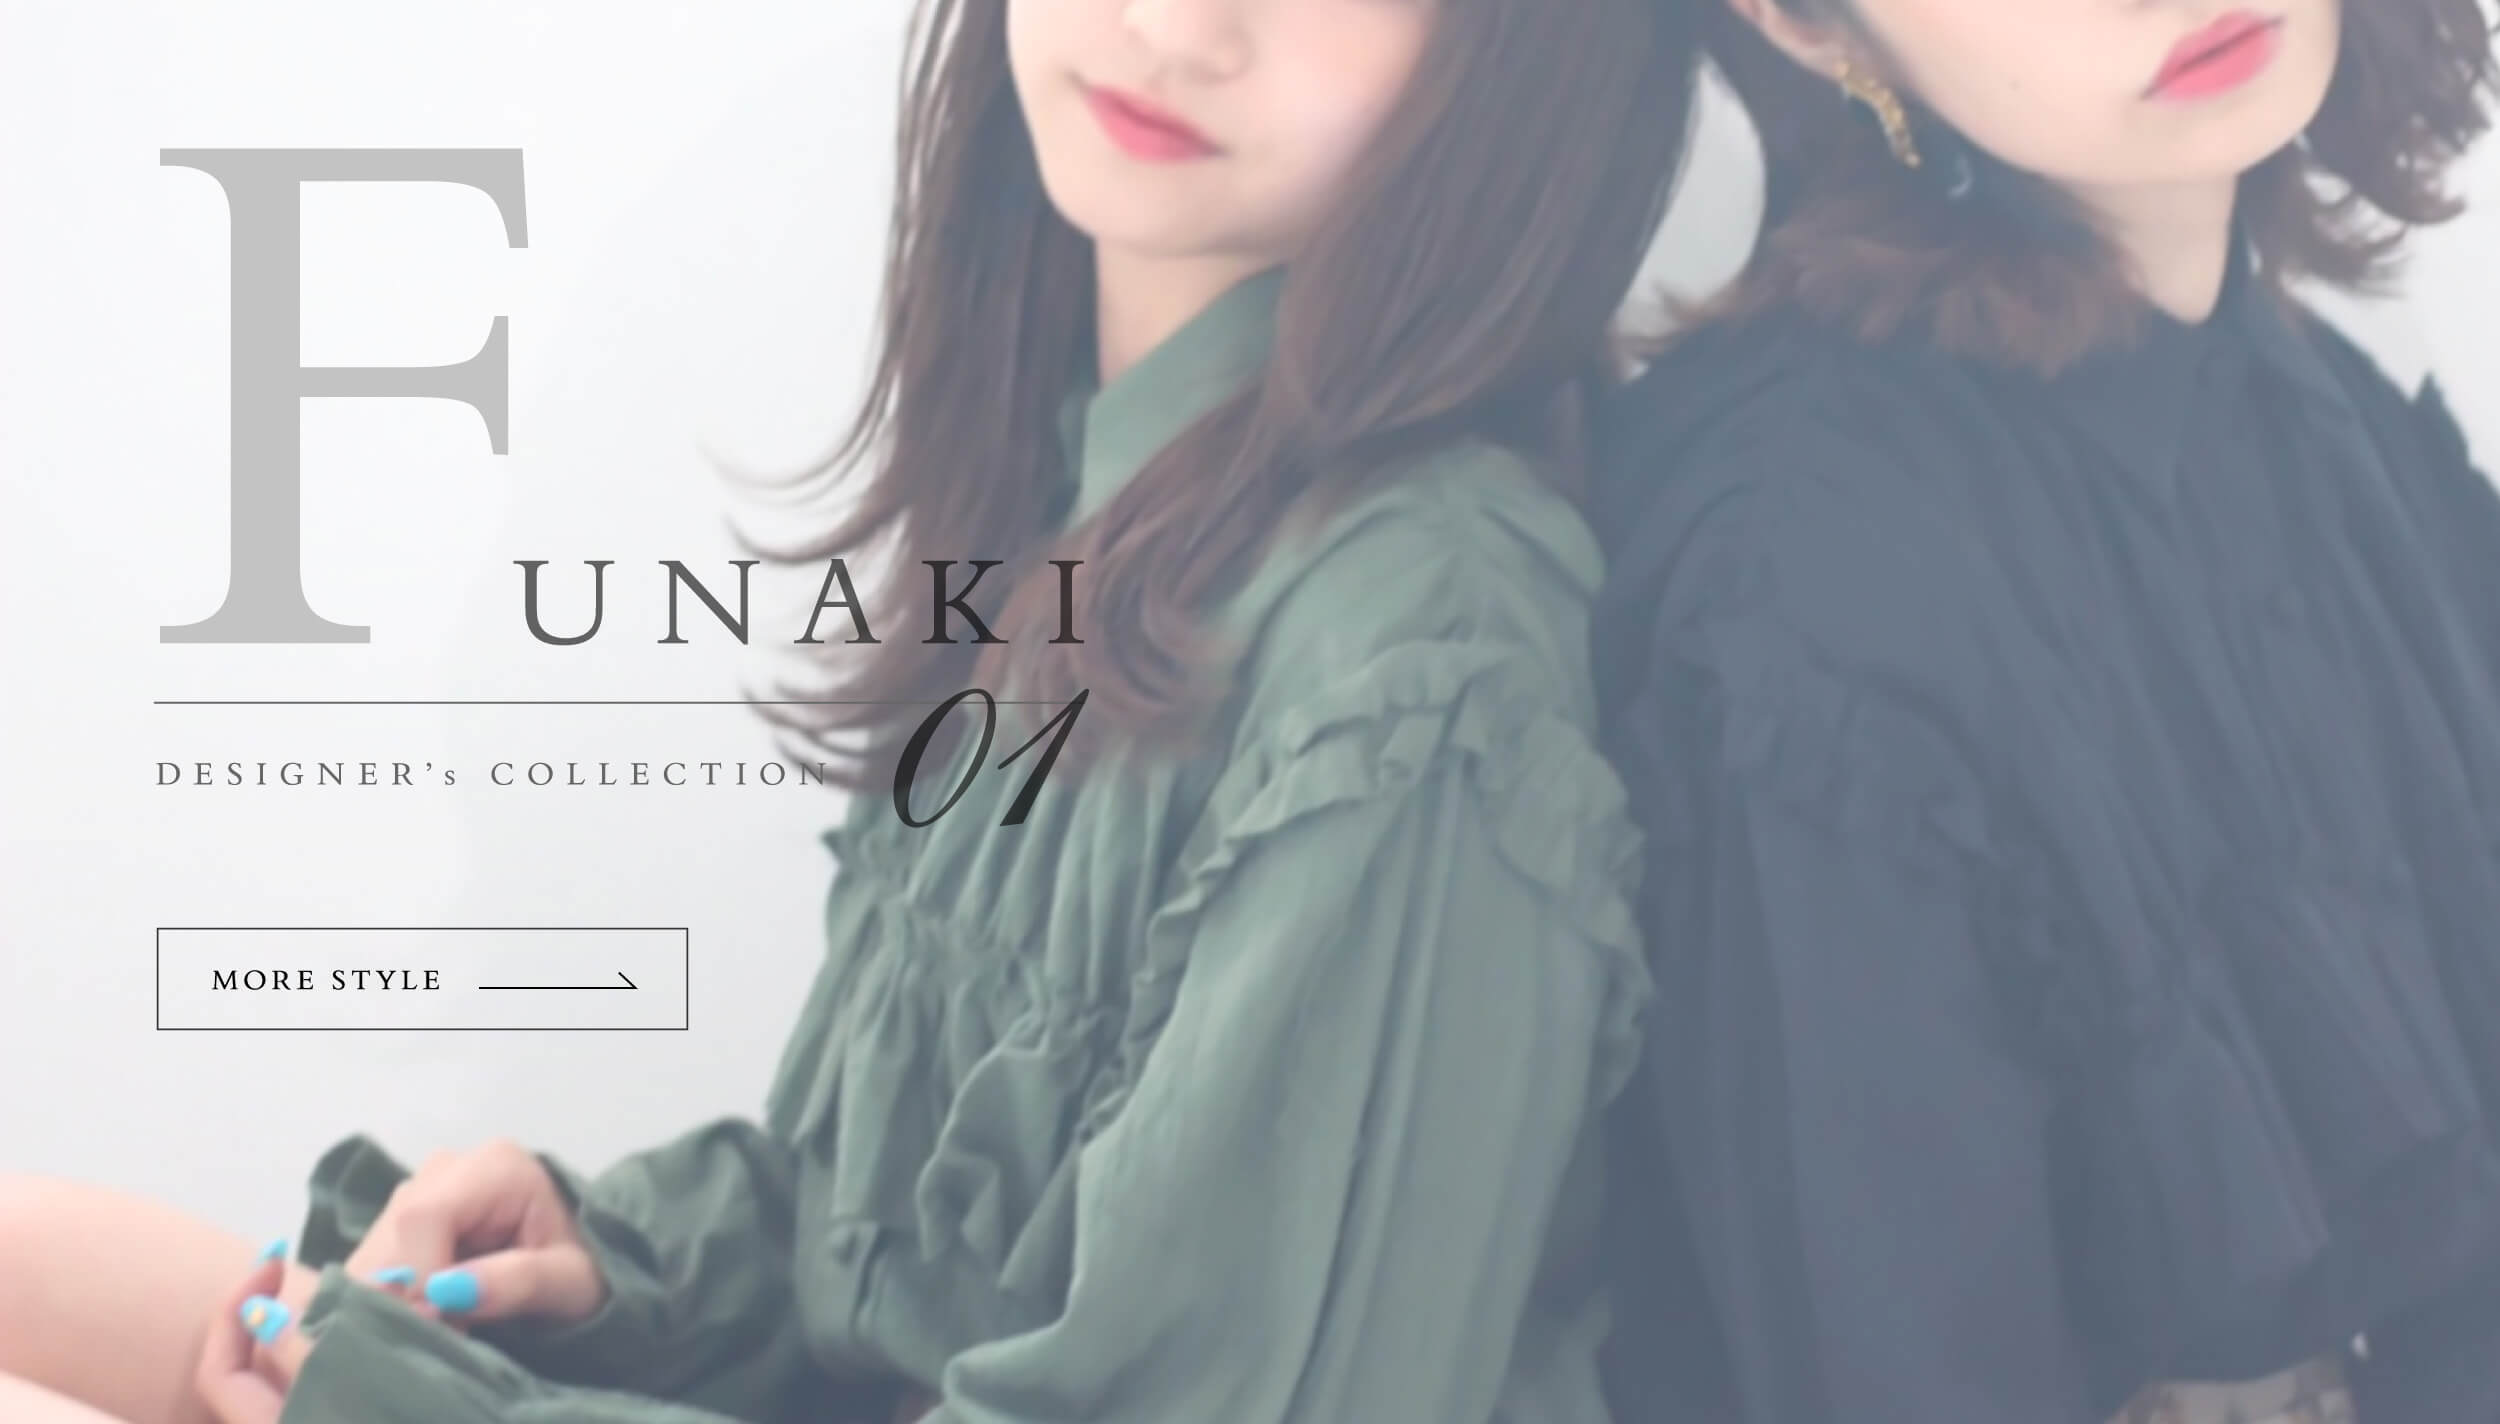 Designer's collection 01 FUNAKI